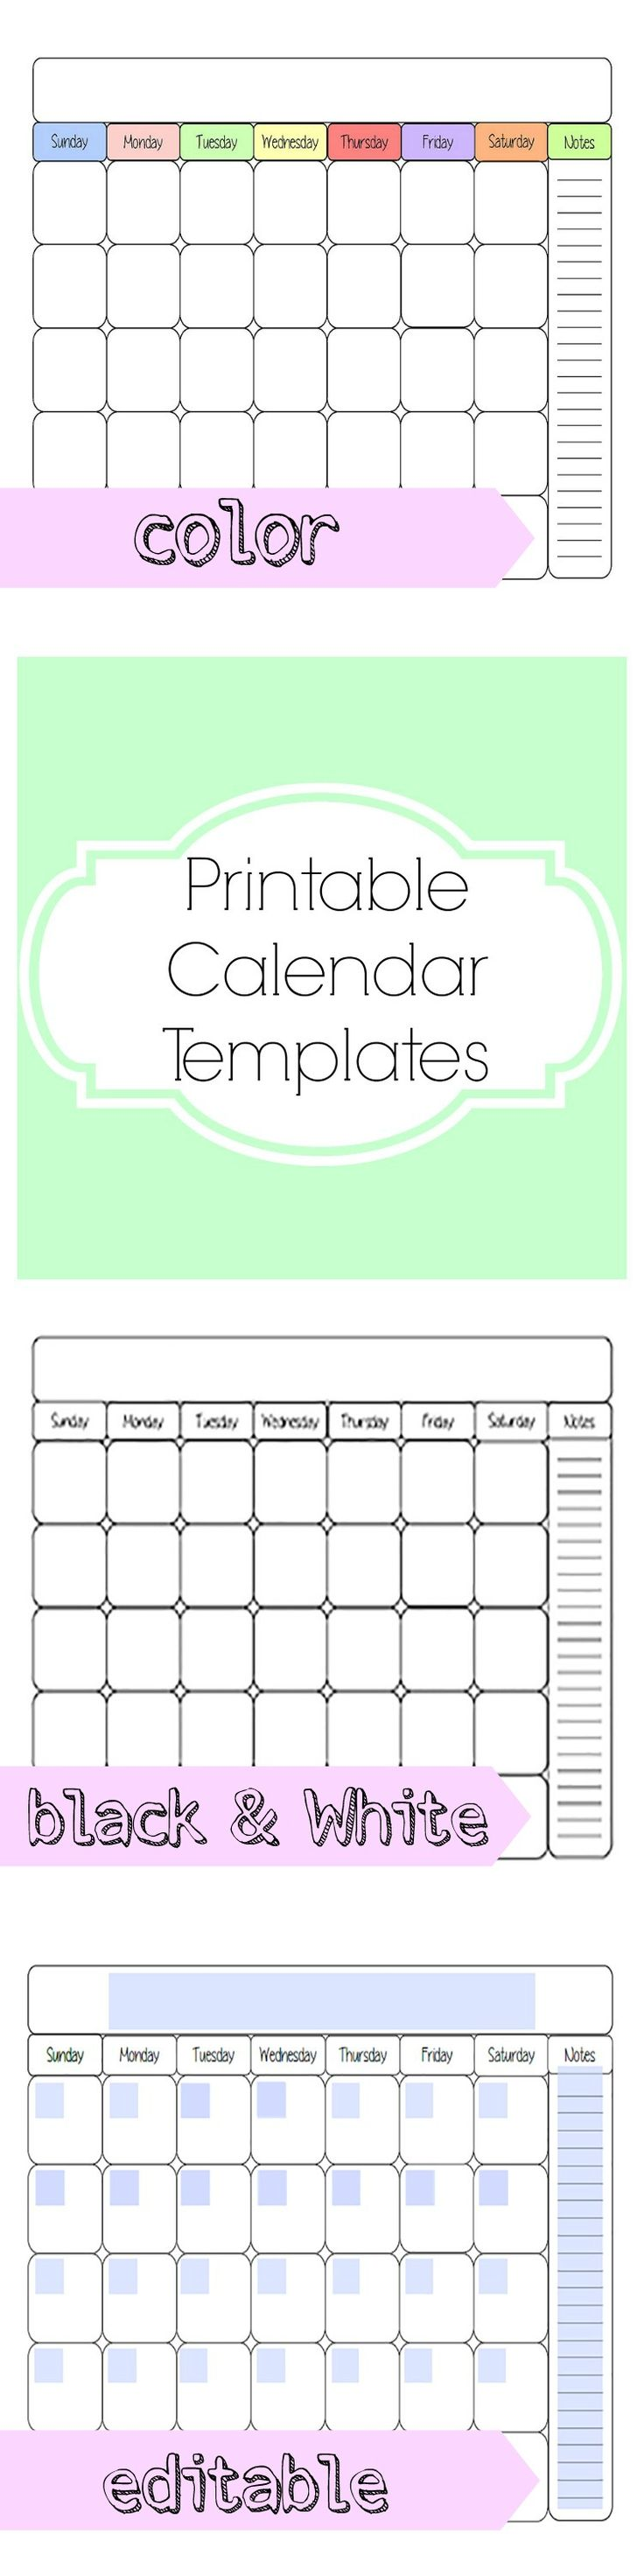 Calendar template for DIY monthly calendar at home, work, or school. One of my best ideas for family organization was to get everyone on the same calendar. Just stick it to the wall and everyone can see the weekly activities and meals. It's free, so grab a template for your office or classroom organizer, family notebook, or your personal planner.